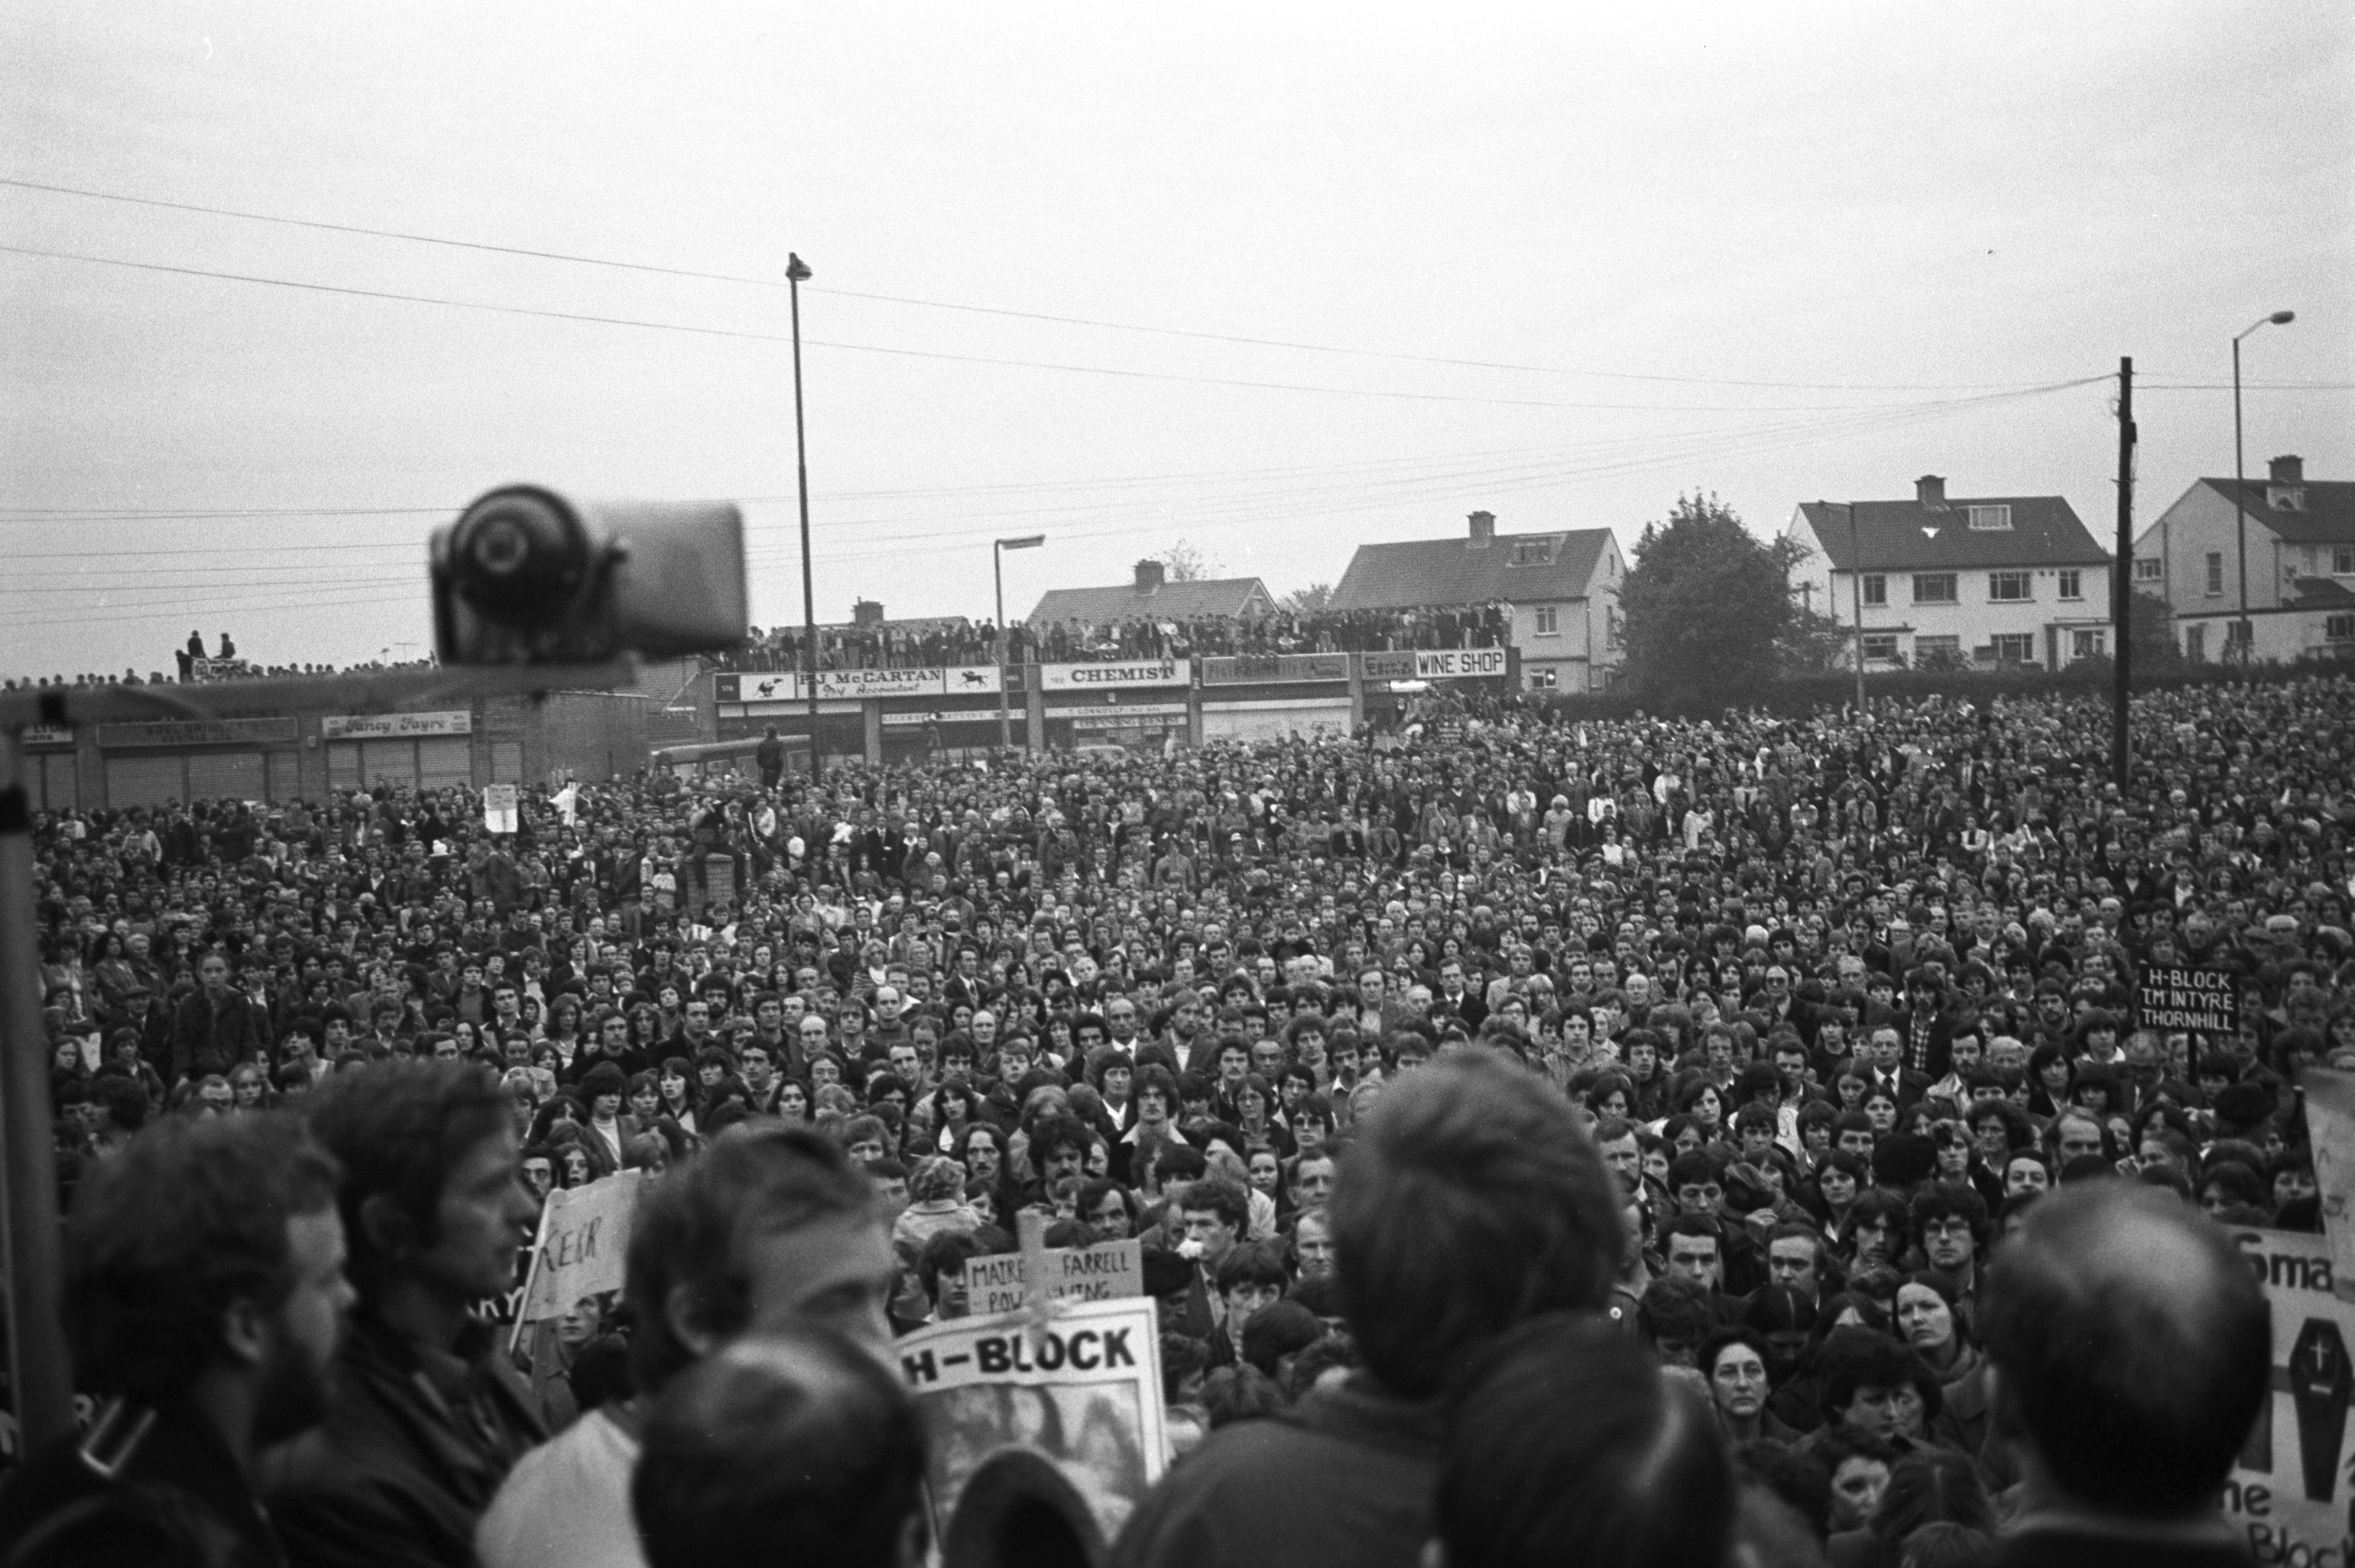 ""\""""BRITAIN RESPONSIBLE FOR IRELAND'S MISERY"""": A protest supporting H-Block hunger strikers  in October 1980.""3081|2052|?|en|2|62c16cba07017ec55b0fad0abf75a3df|False|UNLIKELY|0.30297207832336426